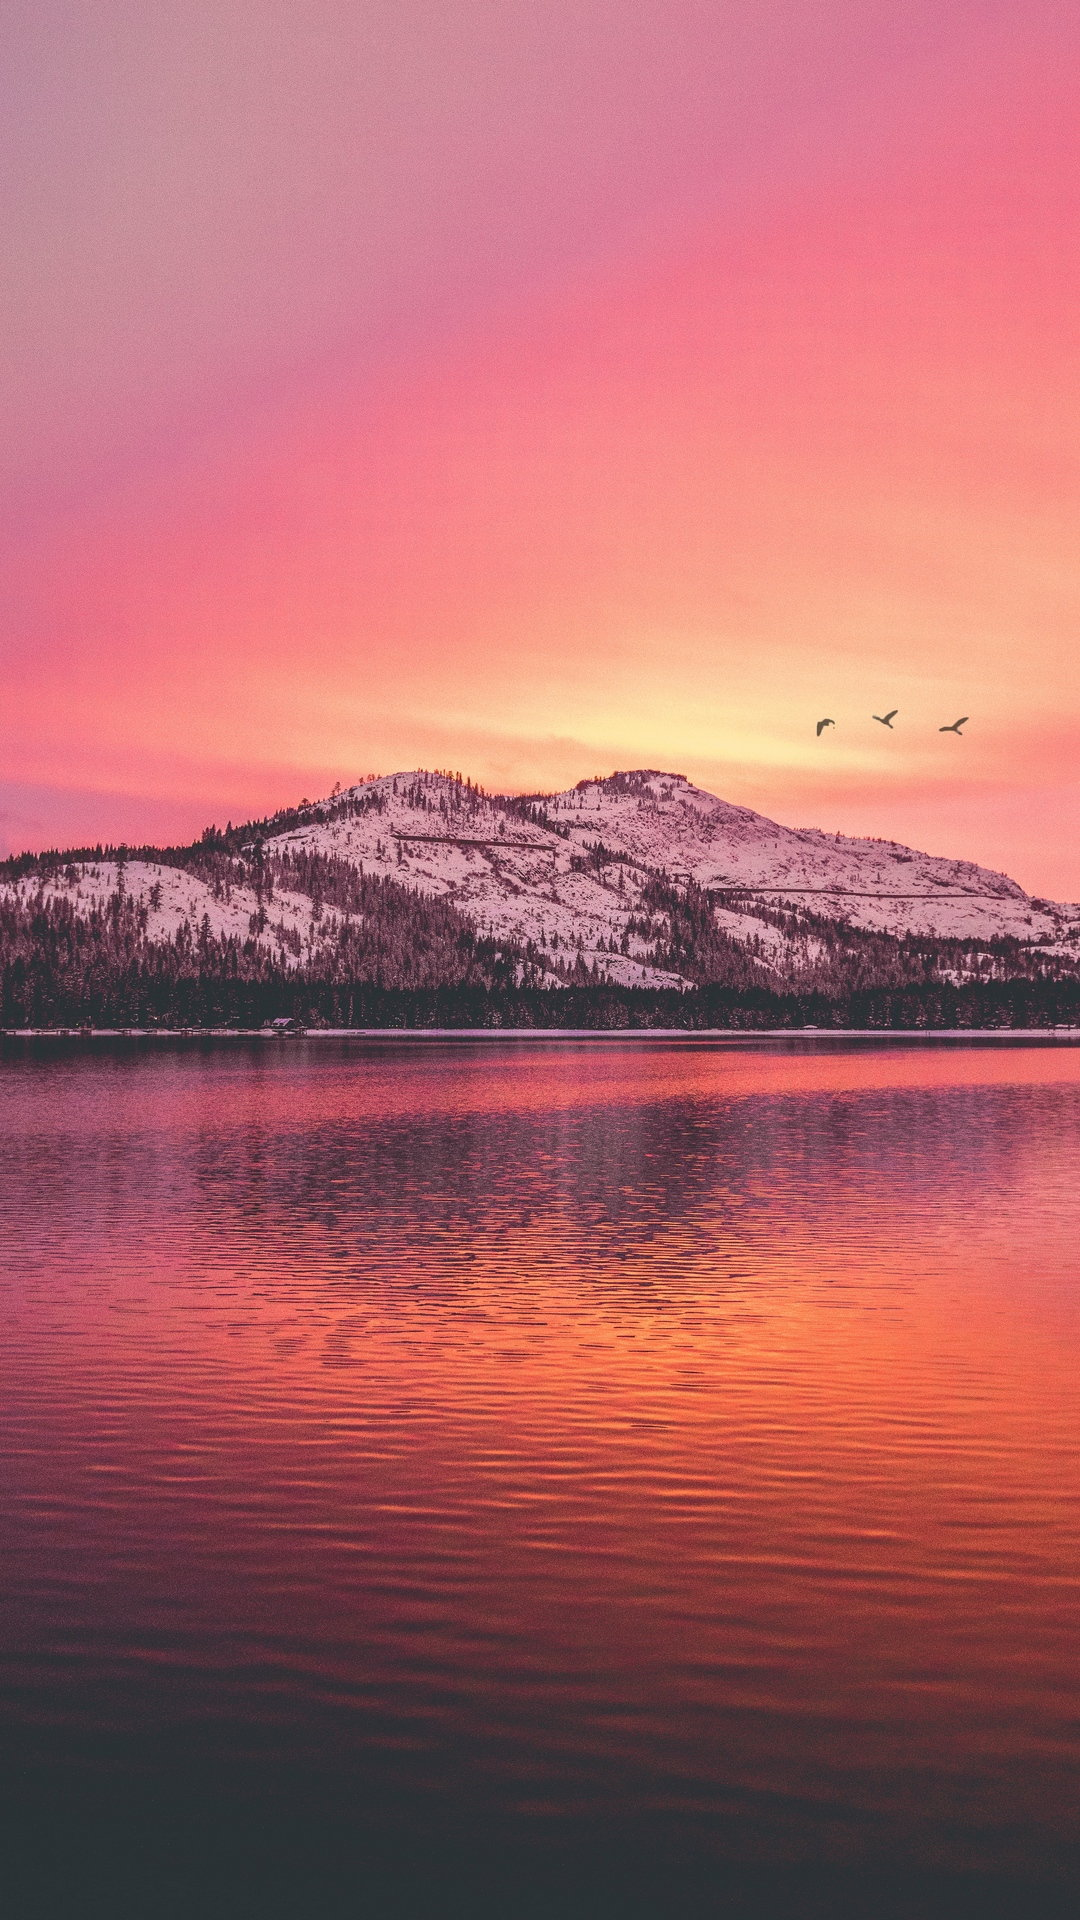 Free photo 'mountain lake sunset' for use in both your personal and commercial projects. Mountains Lake Sunset Wallpaper 1080x1920